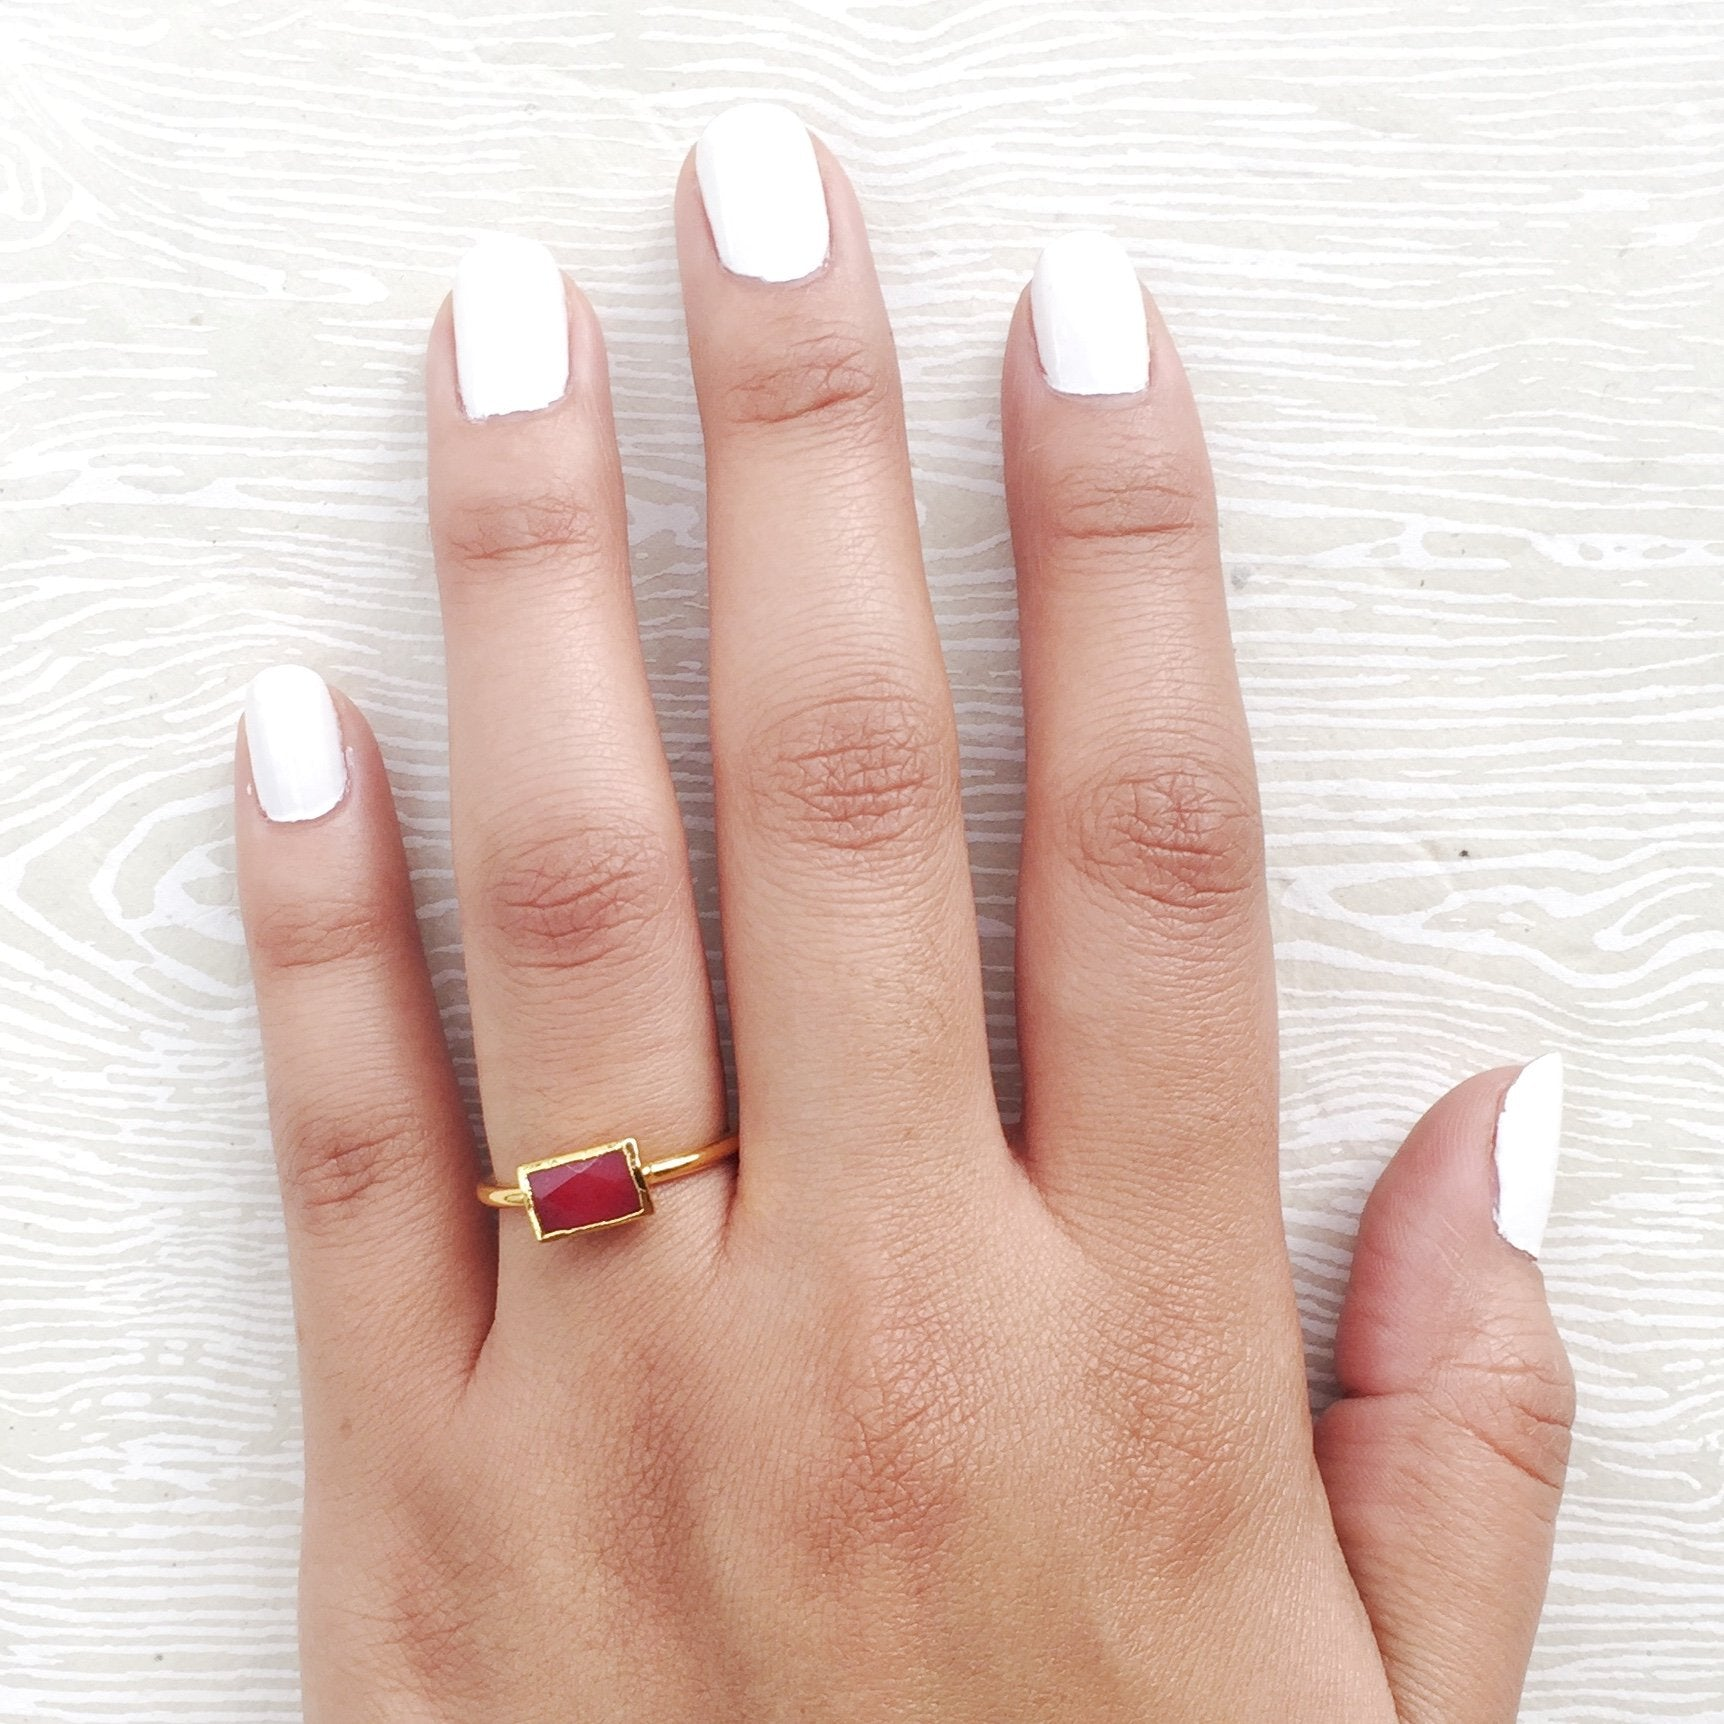 red rectangular stacking ring on hand